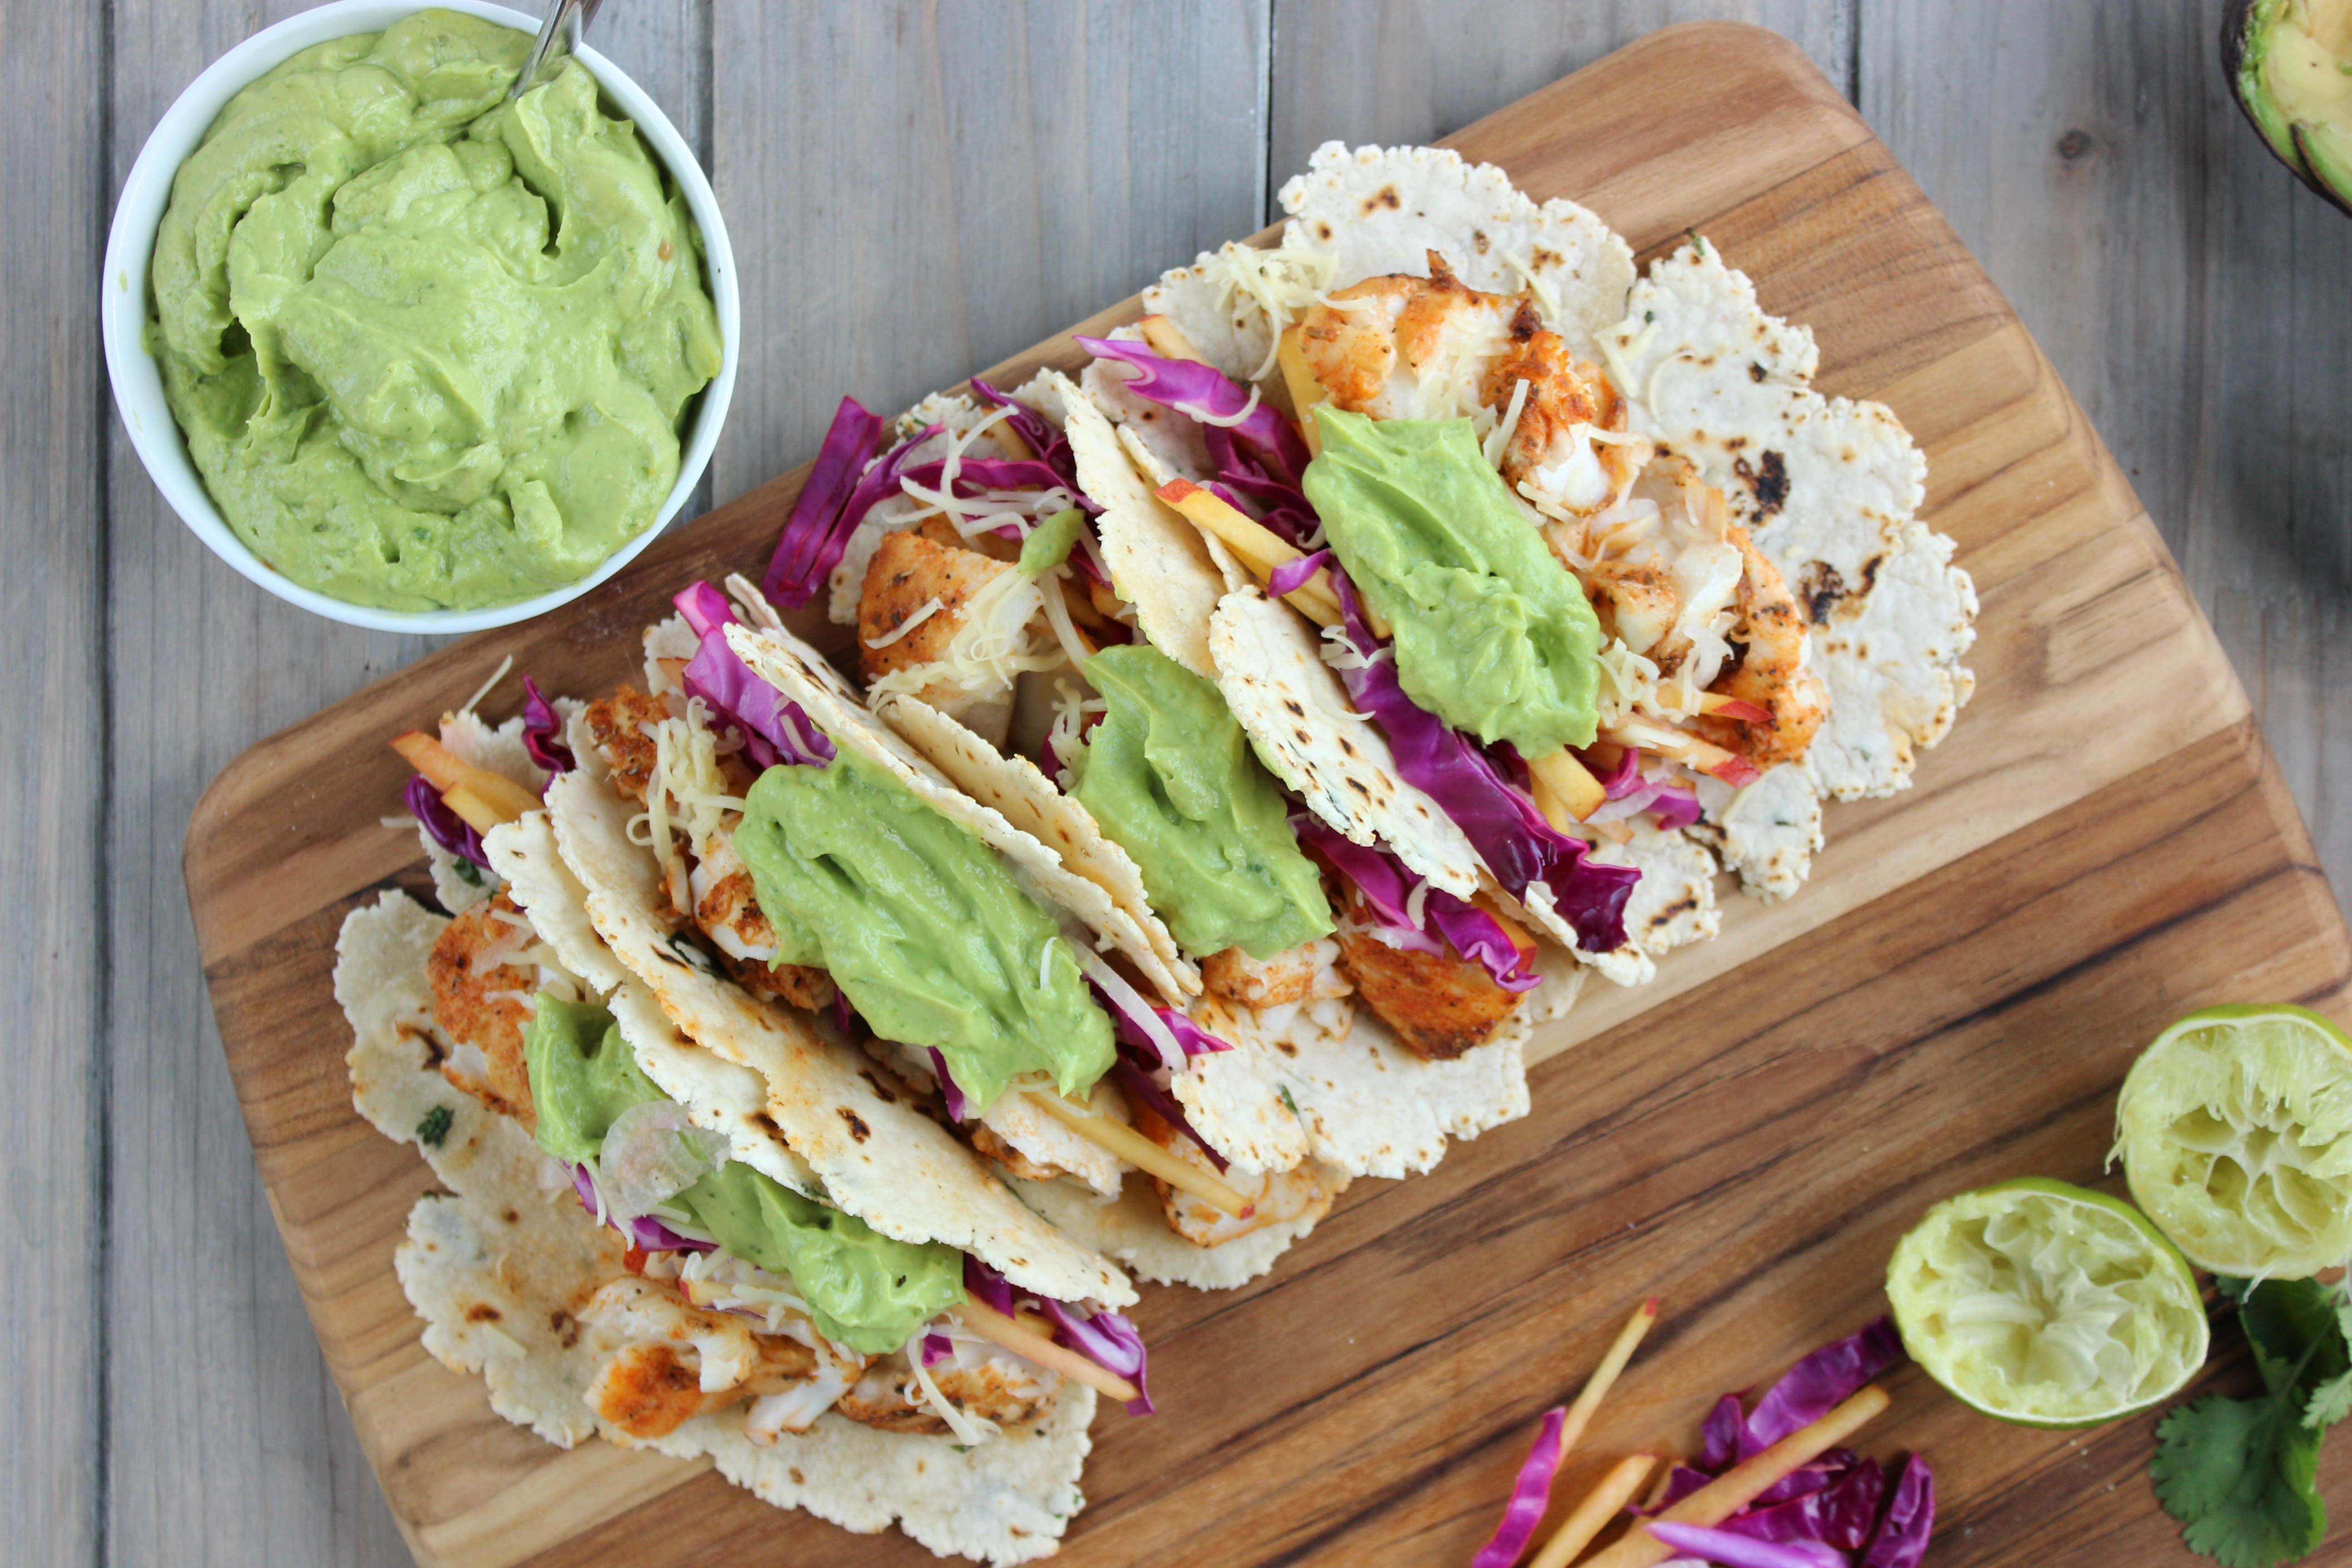 Baja Fish Tacos with Cilantro Lime Tortillas made with @ottosnaturals Cassava Flour | Beautifully Paleo